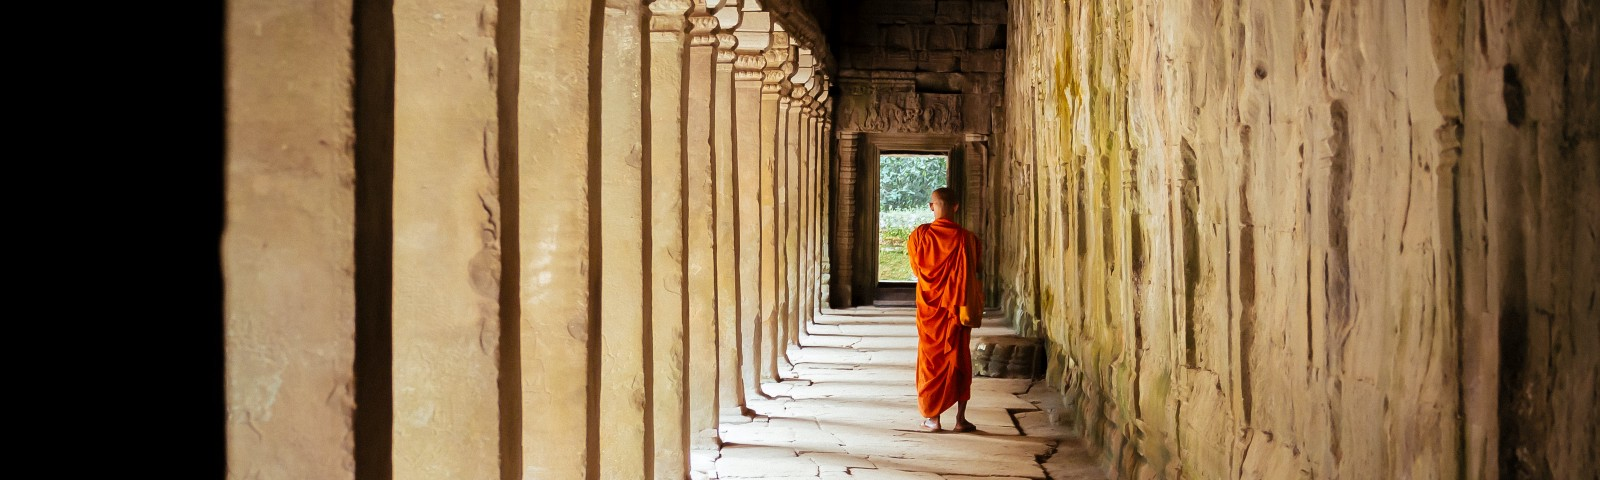 10 Best Thich Nhat Hanh Quotes